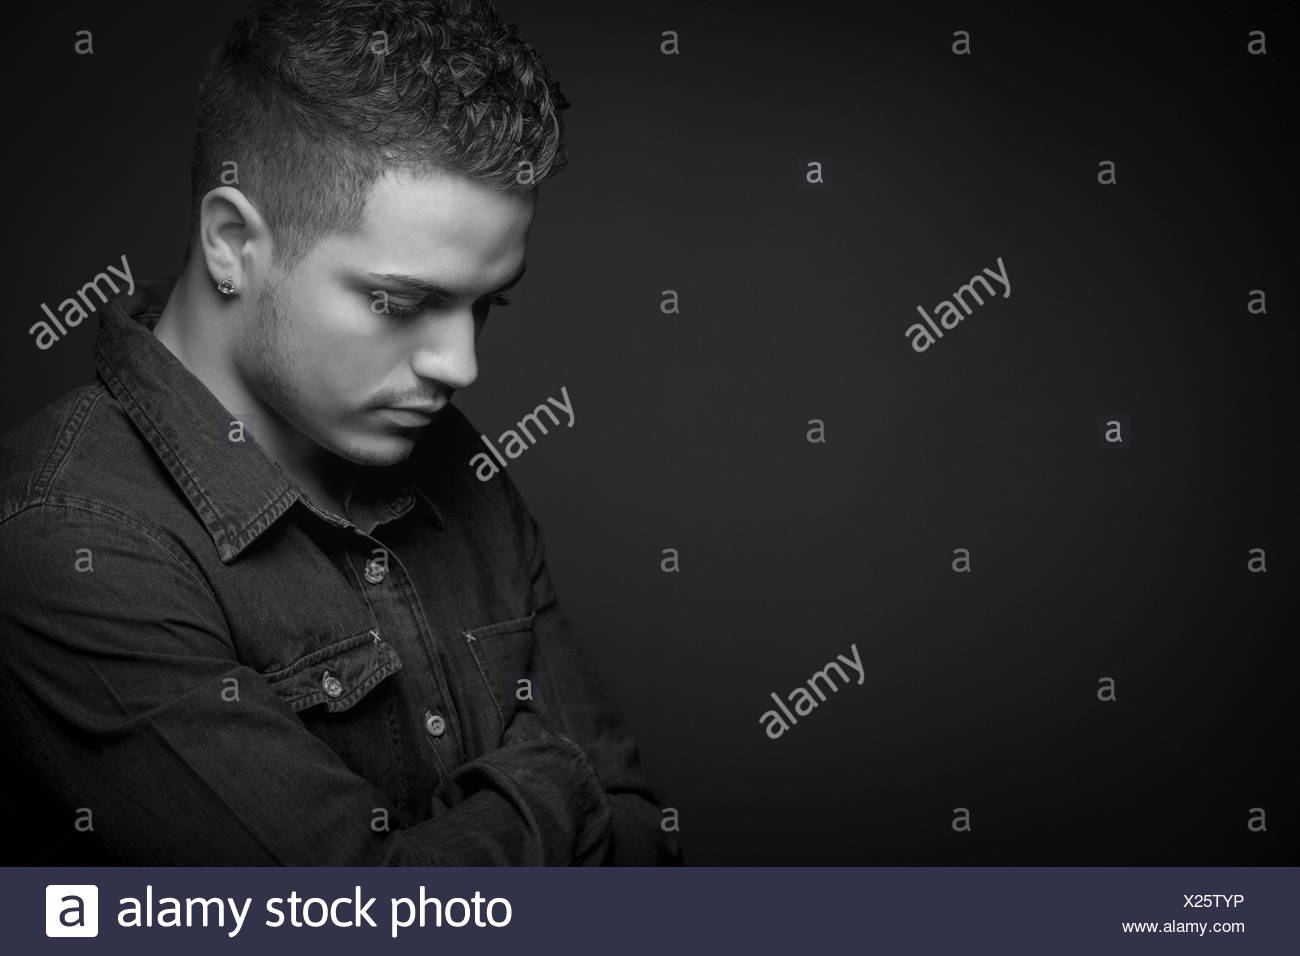 Black and white portrait teenage boy serious sad - Stock Image